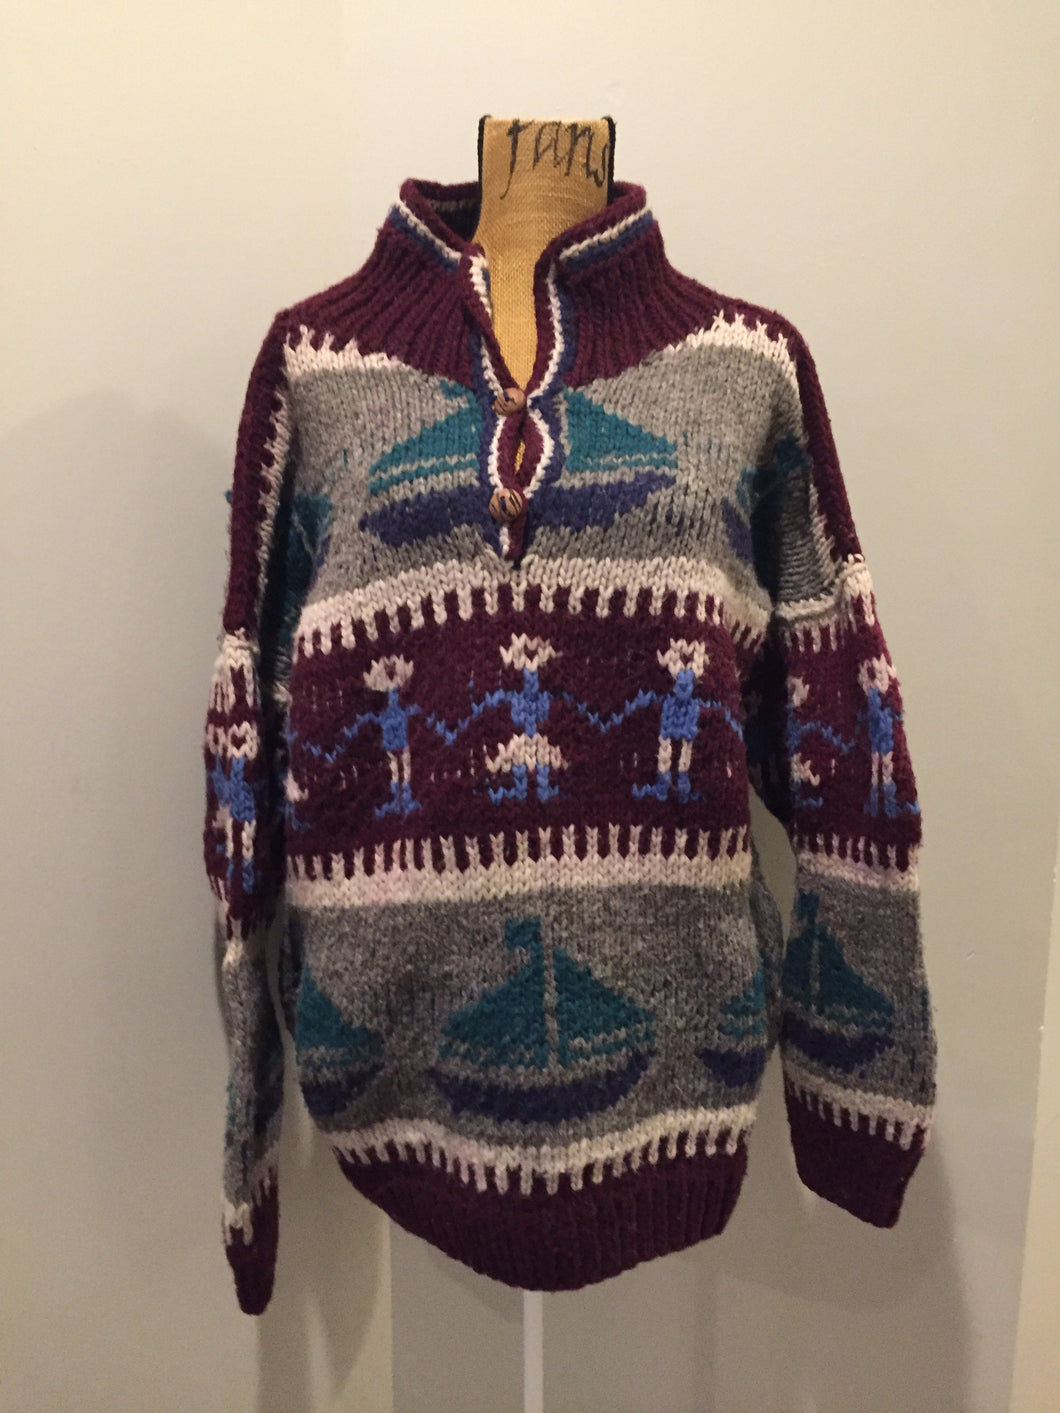 Amos & Andes Imports Multi-Coloured Wool Sweater with Sailboat Motif